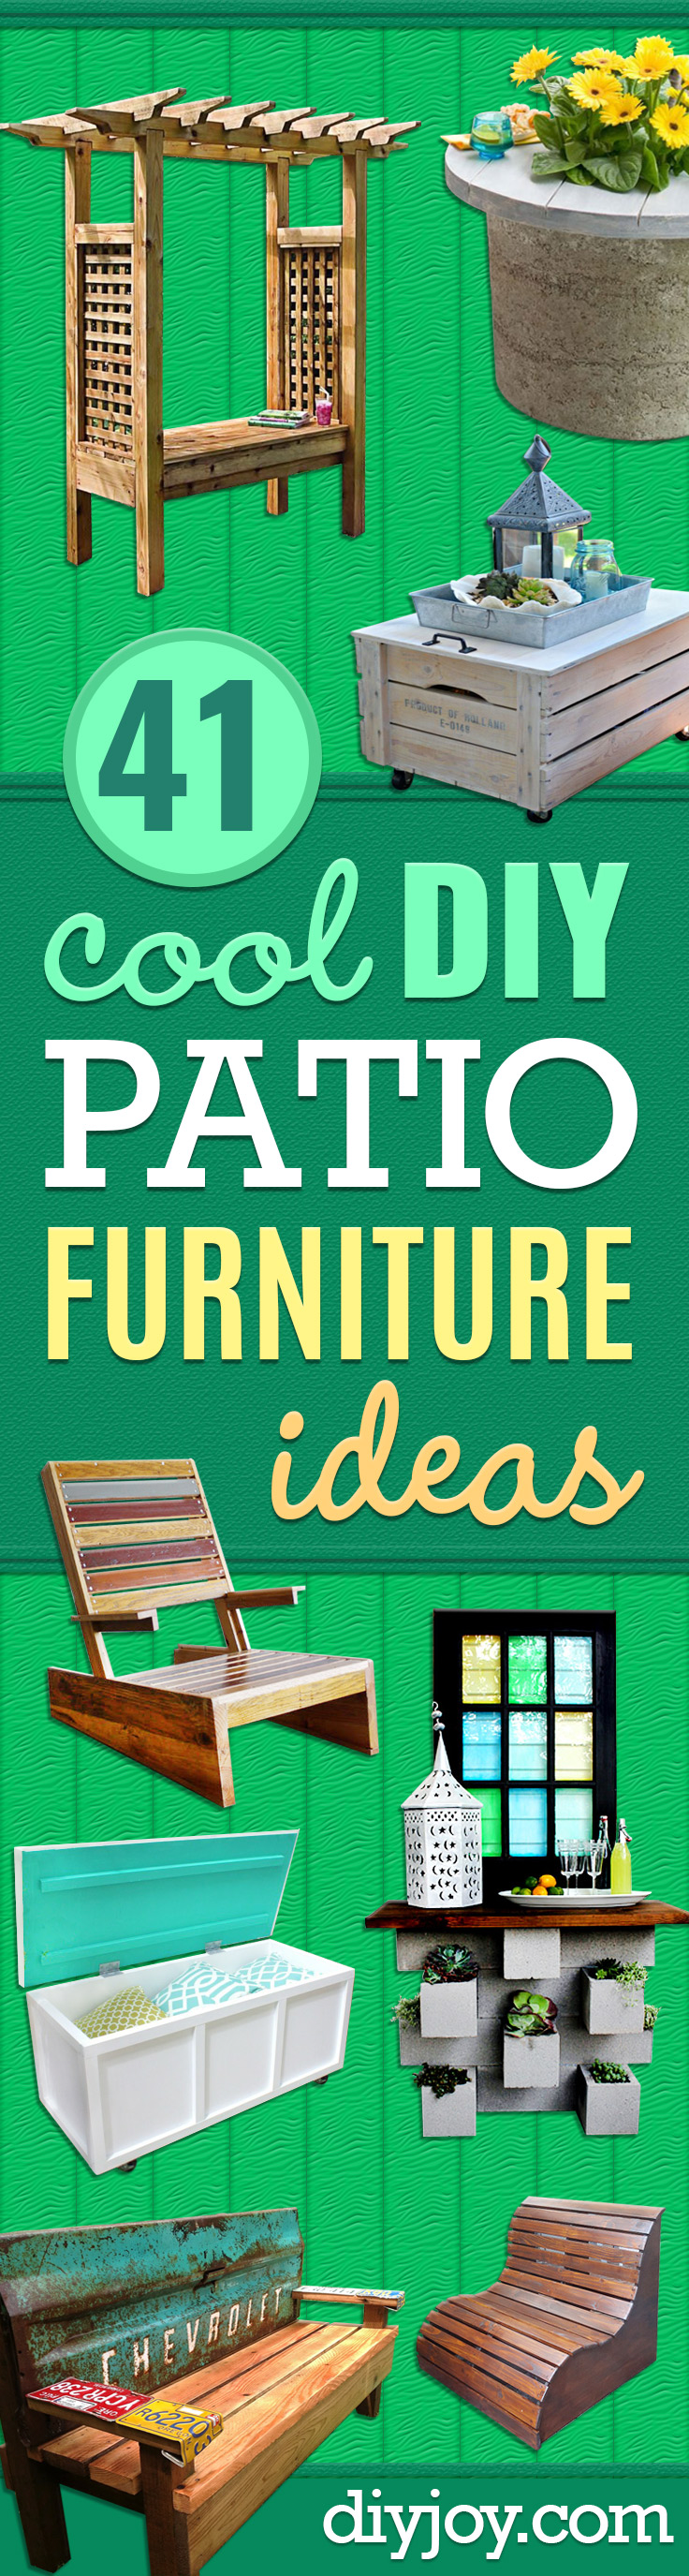 DIY Patio Furniture Ideas - Cheap Do It Yourself Porch and Easy Backyard Furniture, Rocking Chairs, Swings, Benches, Stools and Seating Tutorials - Dining Tables from Pallets, Cinder Blocks and Upcyle Ideas - Sectional Couch Plans With Cushions - Makeover Tips for Existing Furniture #diyideas #outdoors #diy #backyardideas #diyfurniture #patio #diyjoy http://diyjoy.com/diy-patio-furniture-ideas